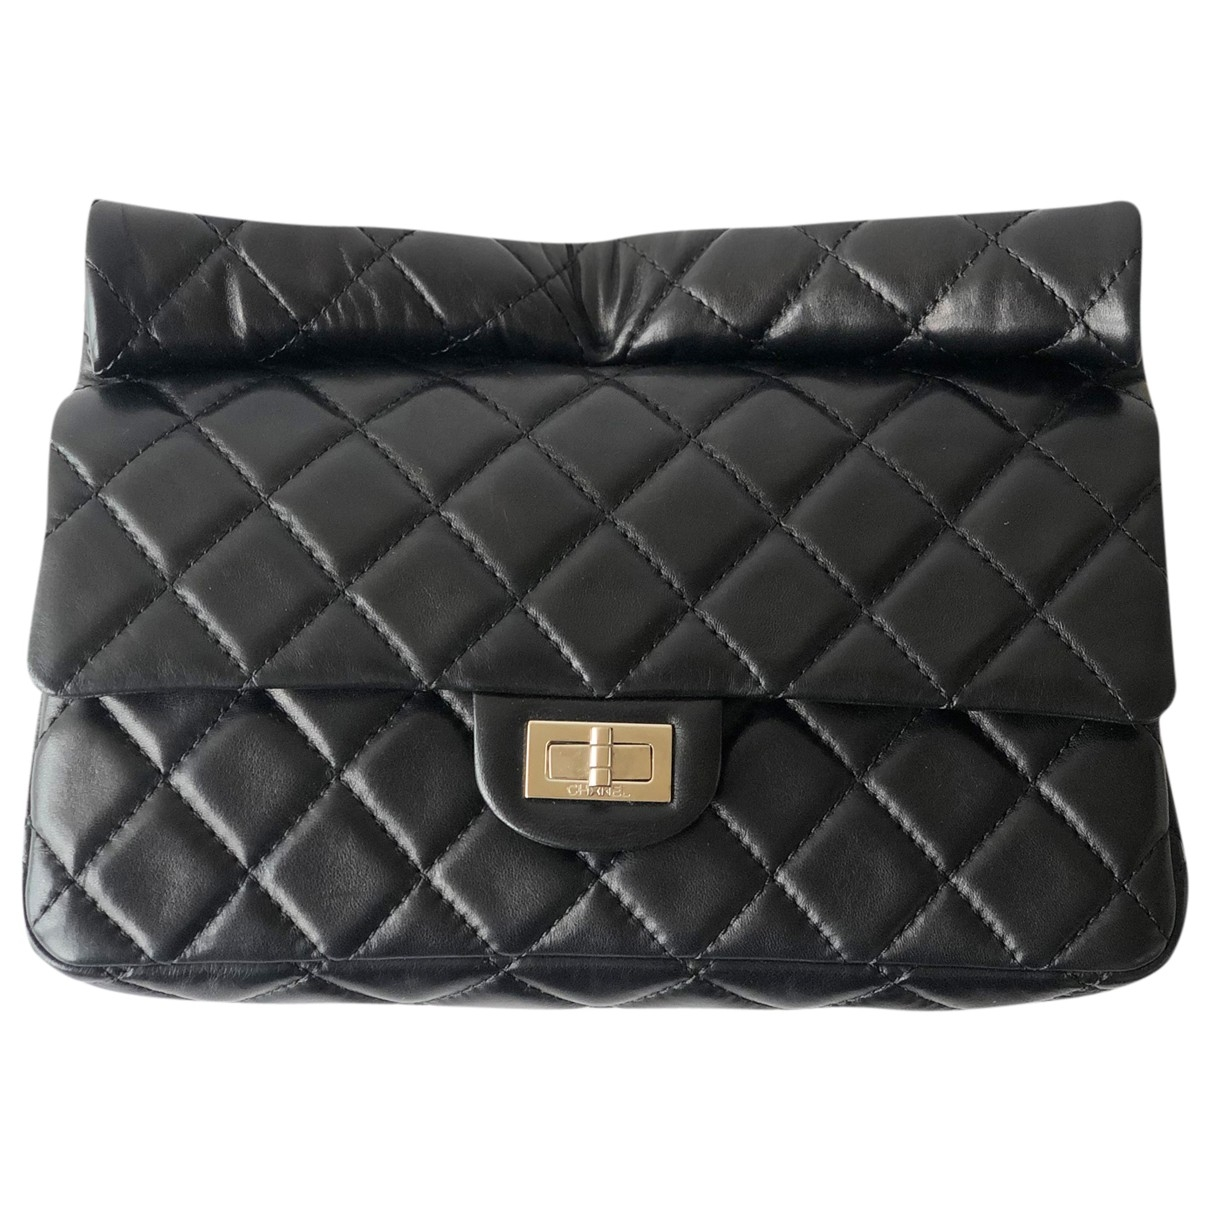 Chanel 2.55 Black Leather Clutch bag for Women \N